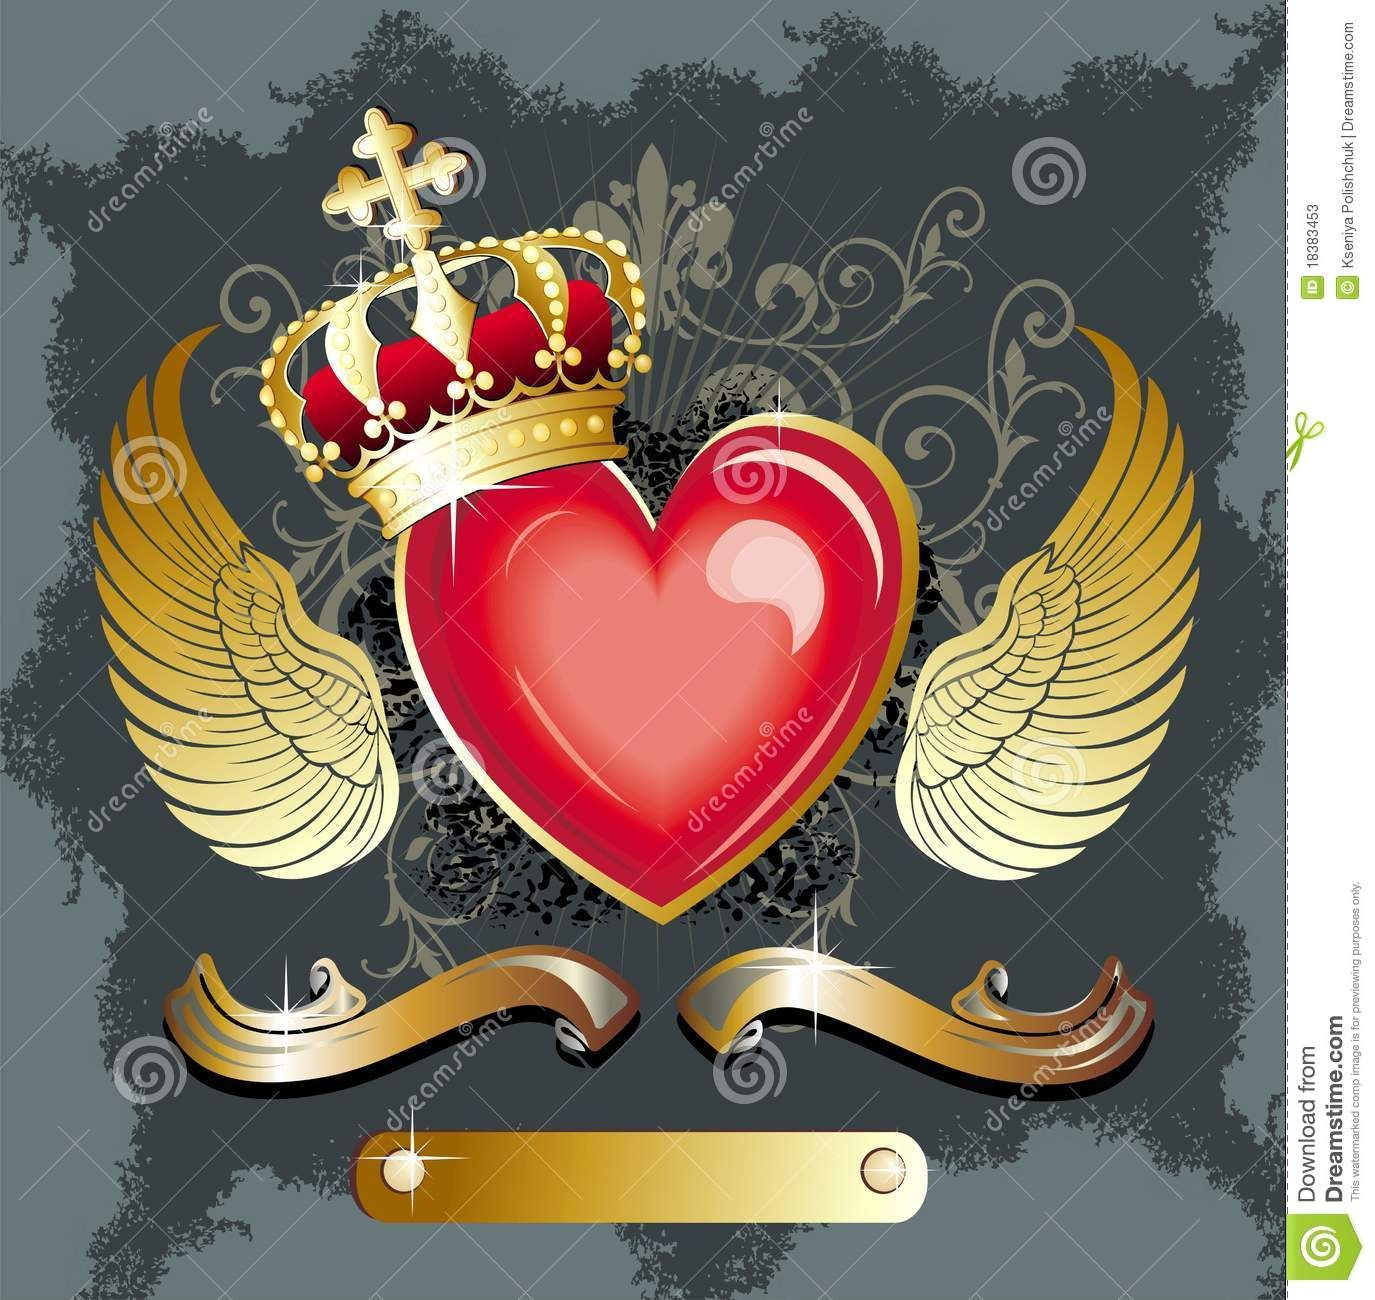 Heart crown wing tattoo more similar stock images of for Gold ribbon tattoos